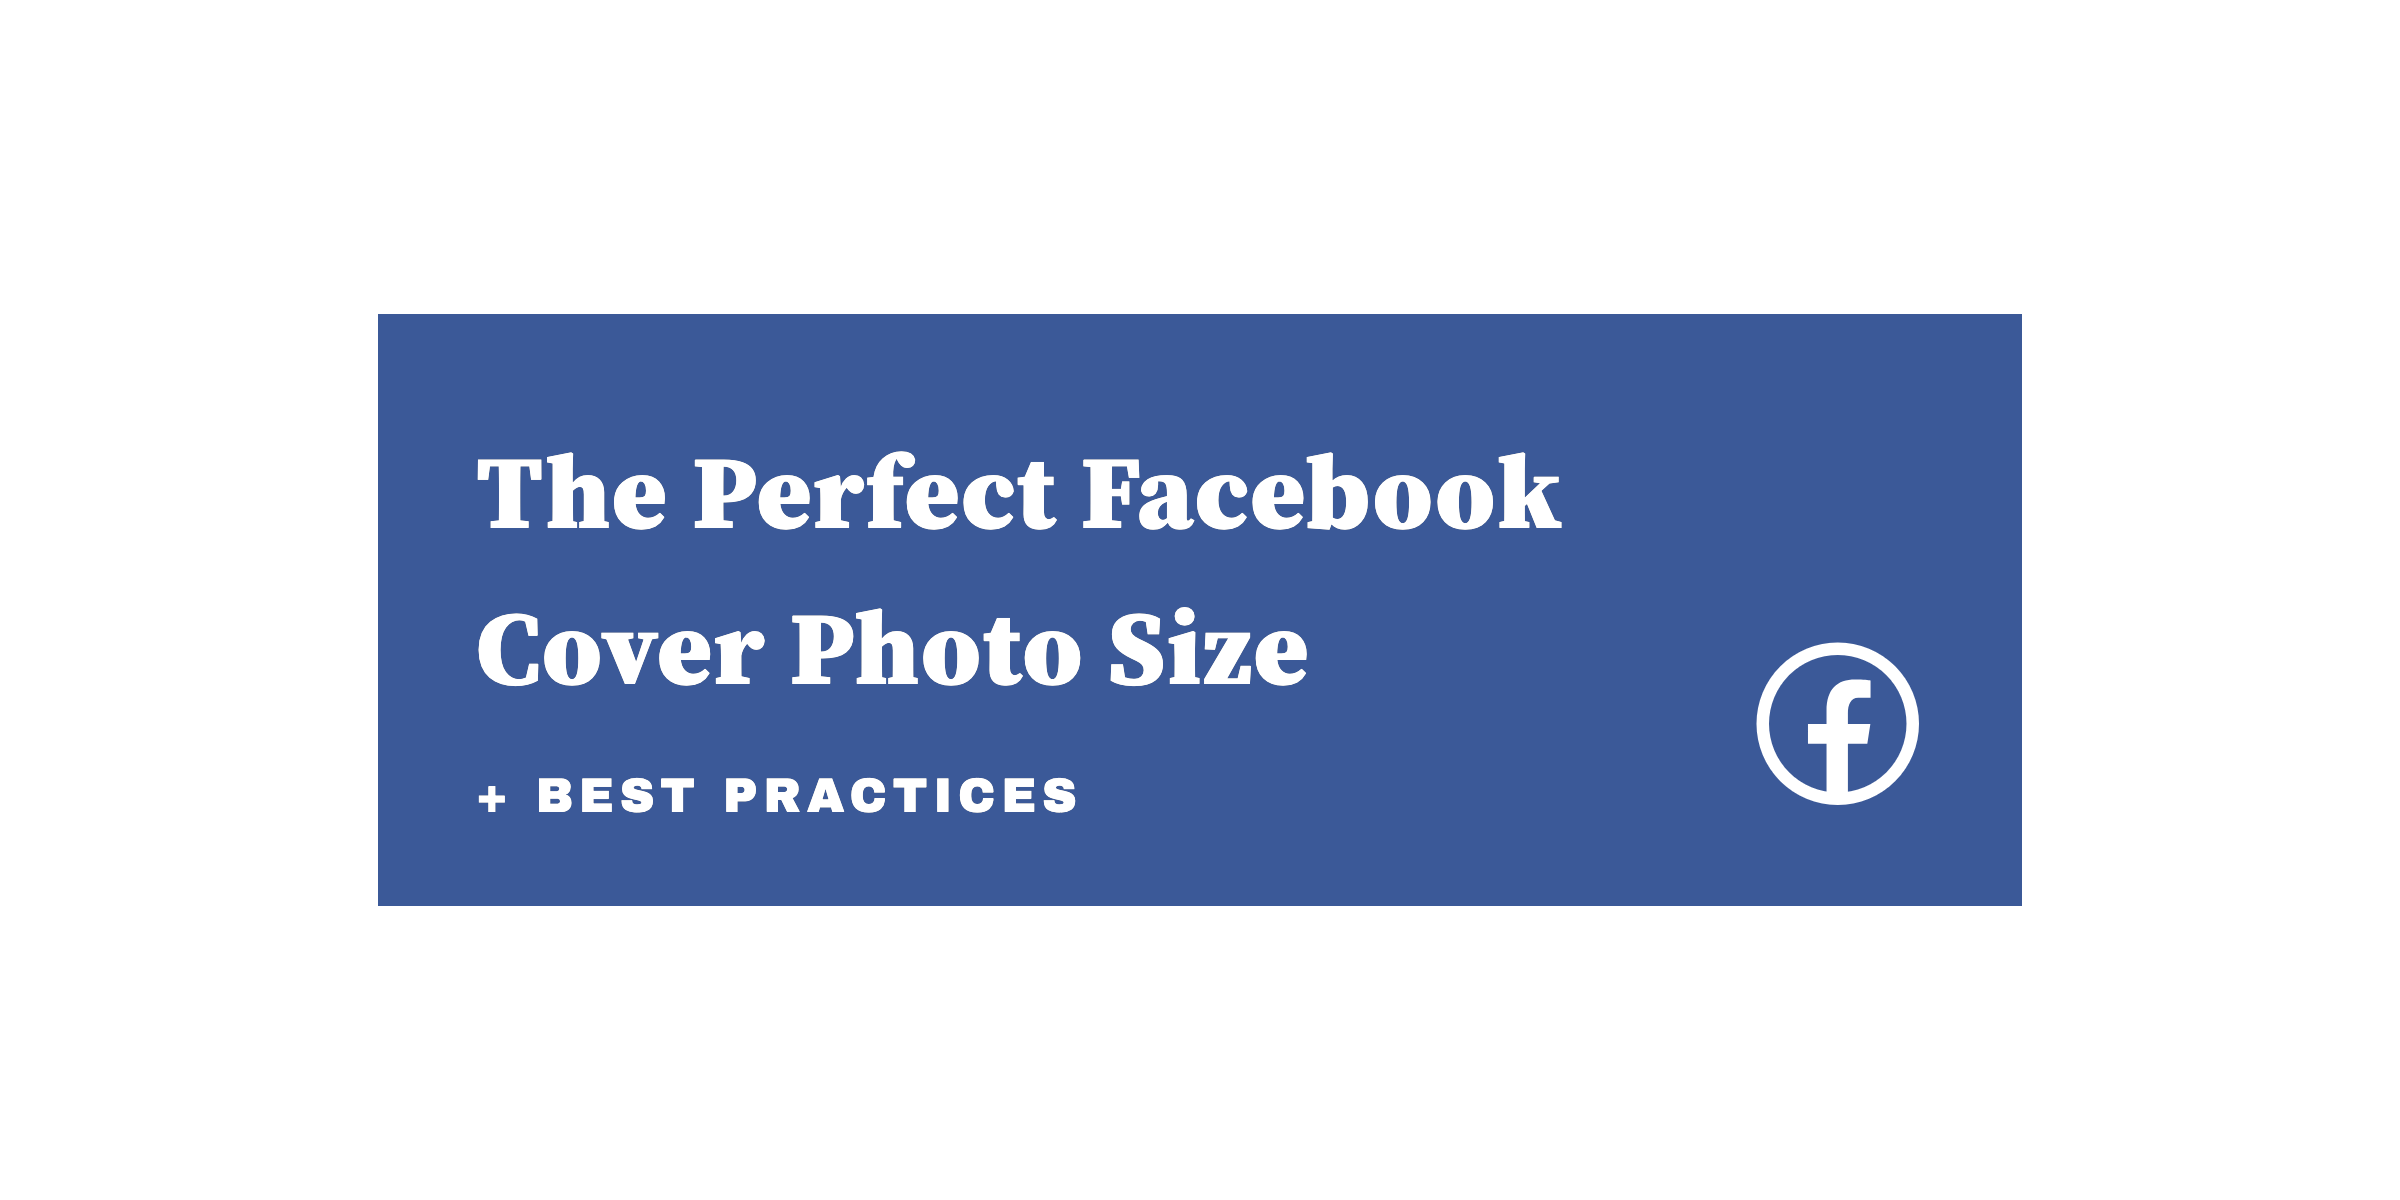 Secrets On How to Change Cover Photo Size for Facebook on your PC